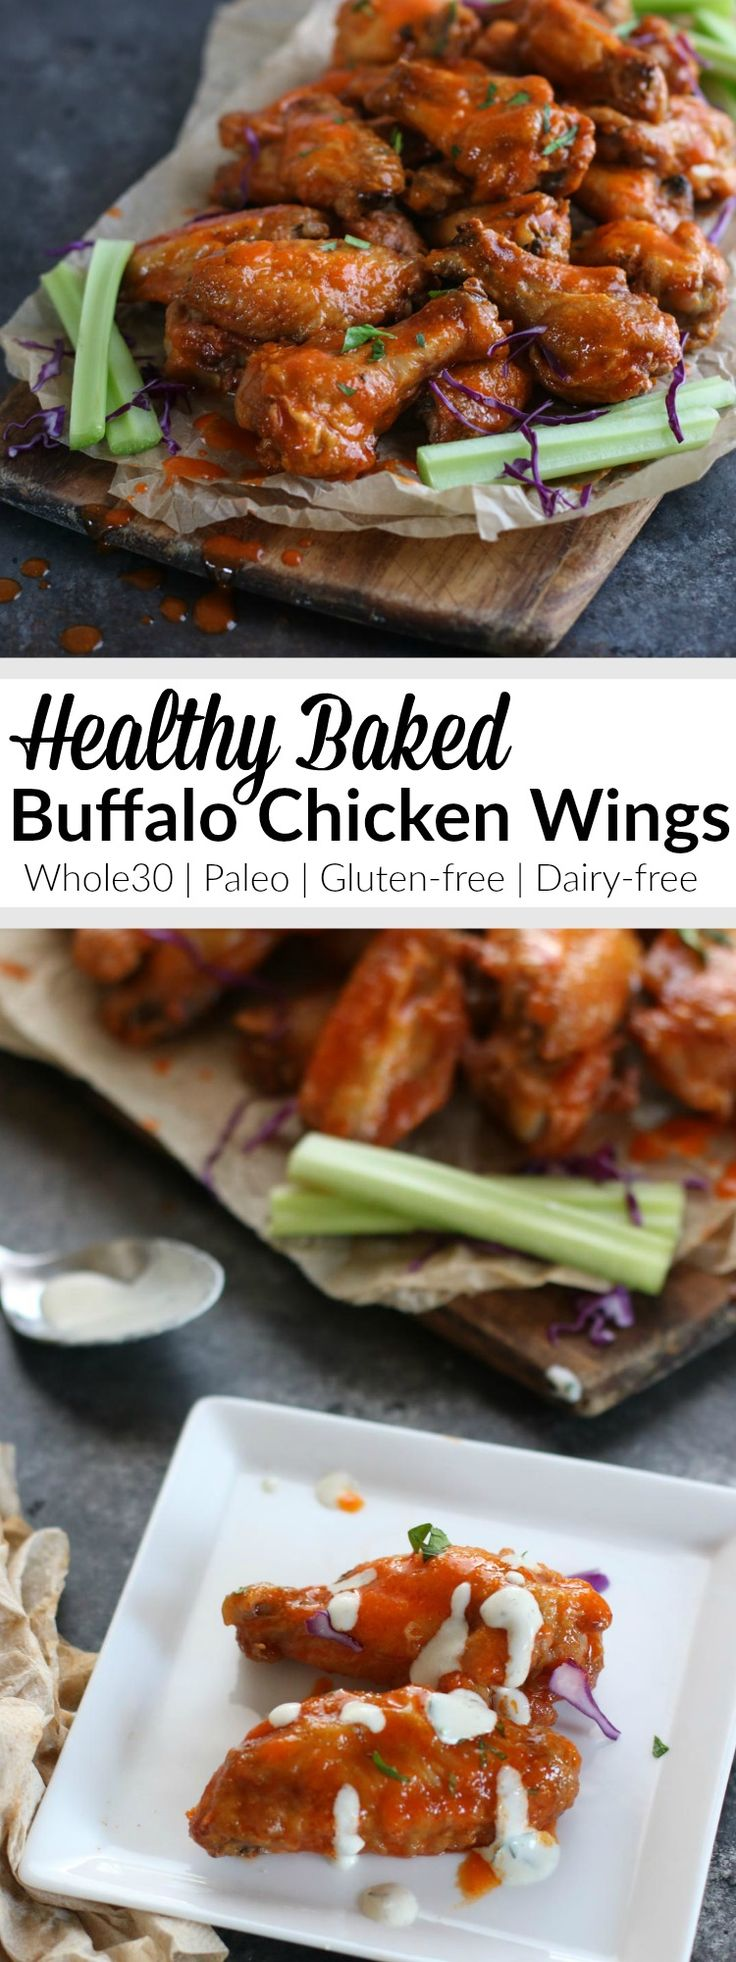 One simple ingredient gives these wings the crispy skin you crave without frying. Tossed with a 5-ingredient Buffalo sauce, they're every bit as good as the real thing - only healthier!   http://therealfoodrds.com/crispy-baked-buffalo-wings/